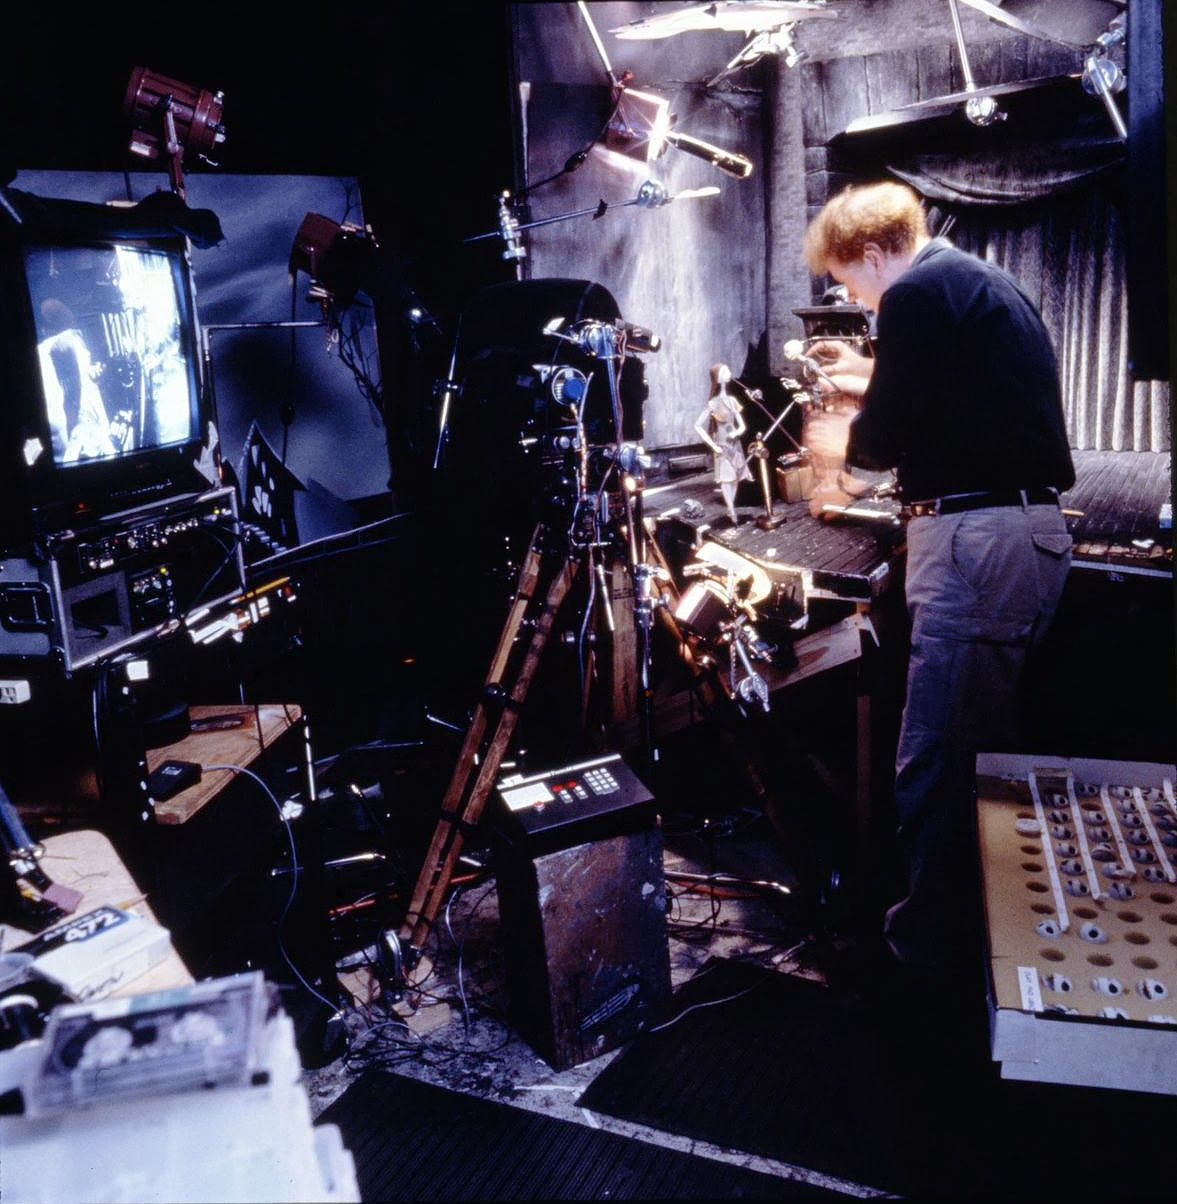 the nightmare before christmas behind the scenes - Buscar con ...